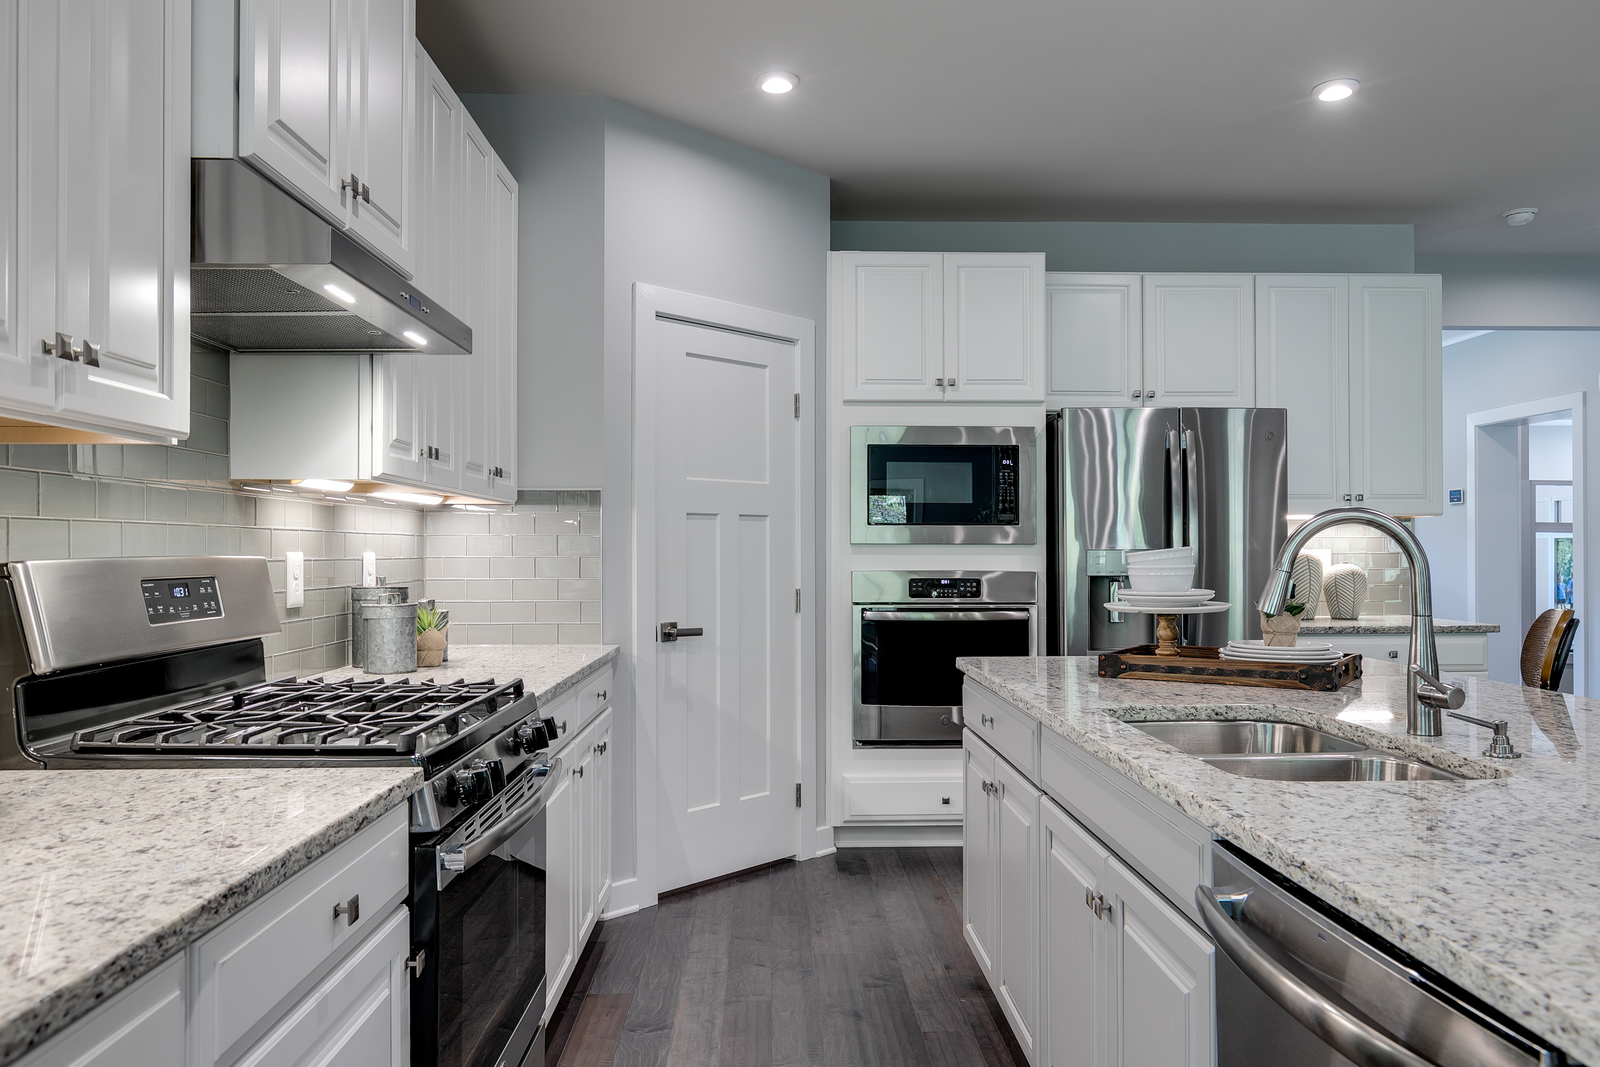 Your new home at Chalfont View includes high-end details, like your choice of white or espresso cabinetry, 12x12 tiled baths and laundry room, and even Nest thermostats.